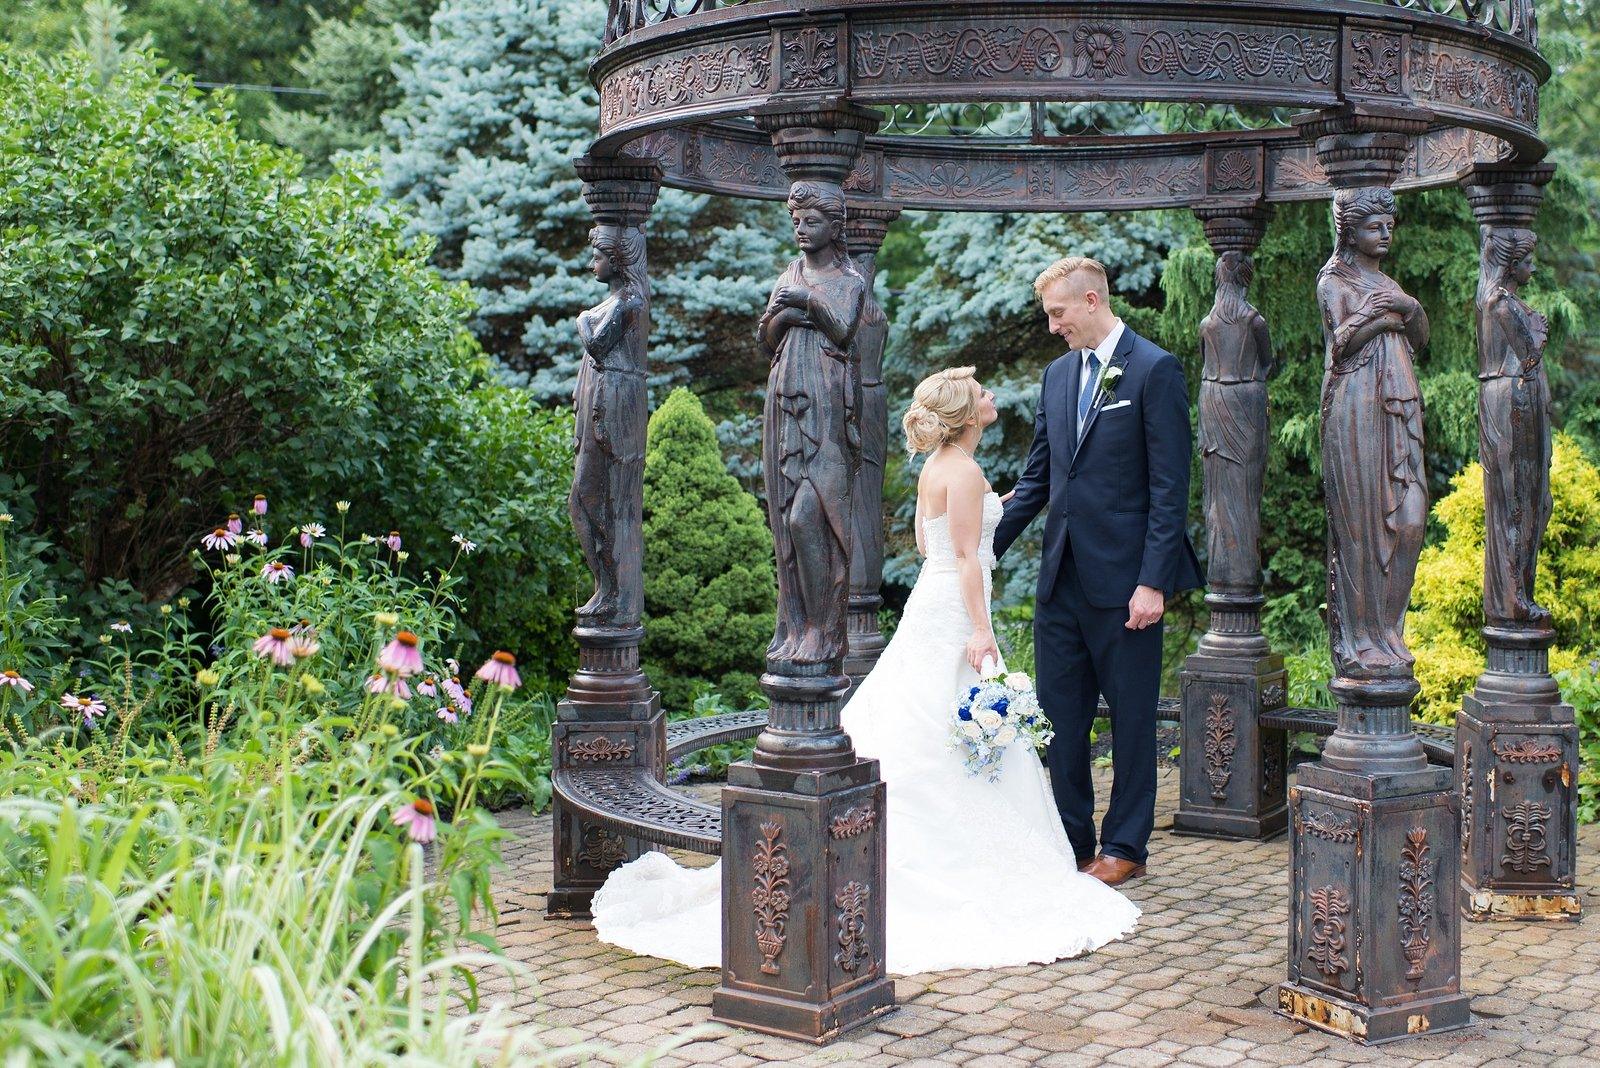 Bride and Groom looking at each other in garden at Villa Borghese Wedding Reception in Wappinger Falls, New York Photo